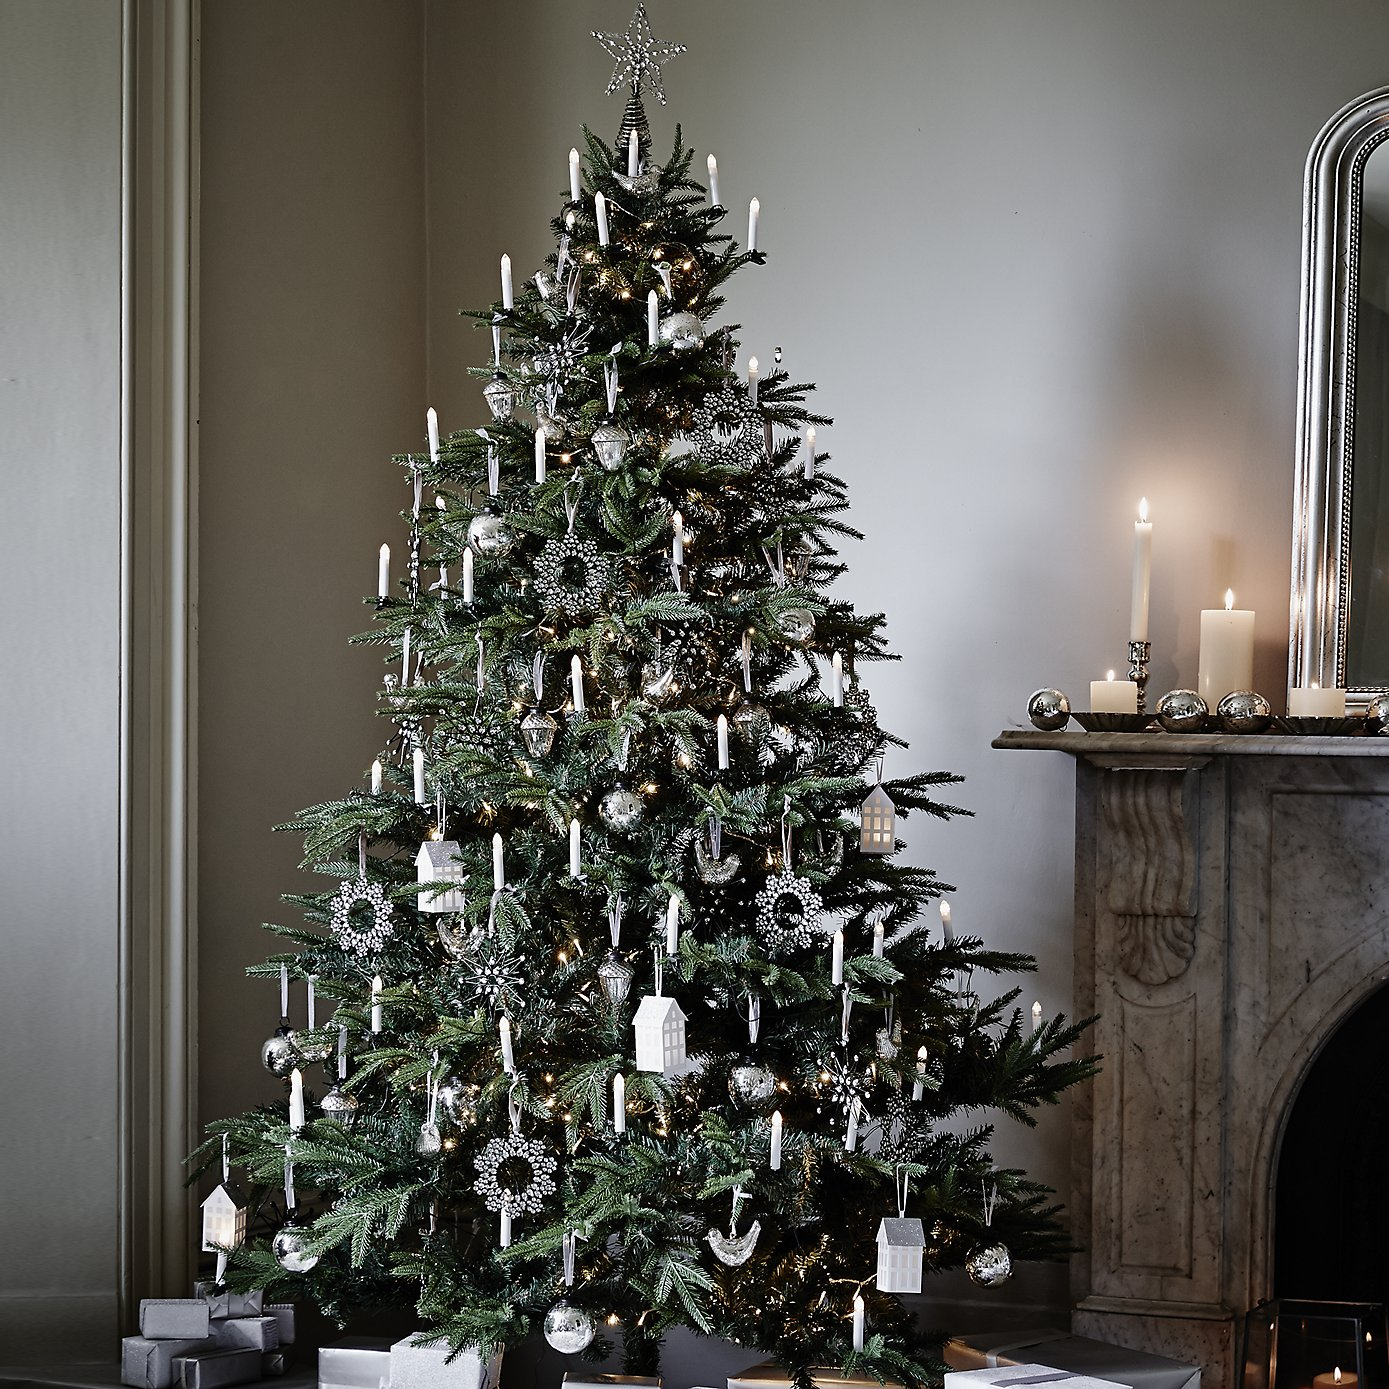 How to decorate your Christmas tree | Christmas | Interiors ...